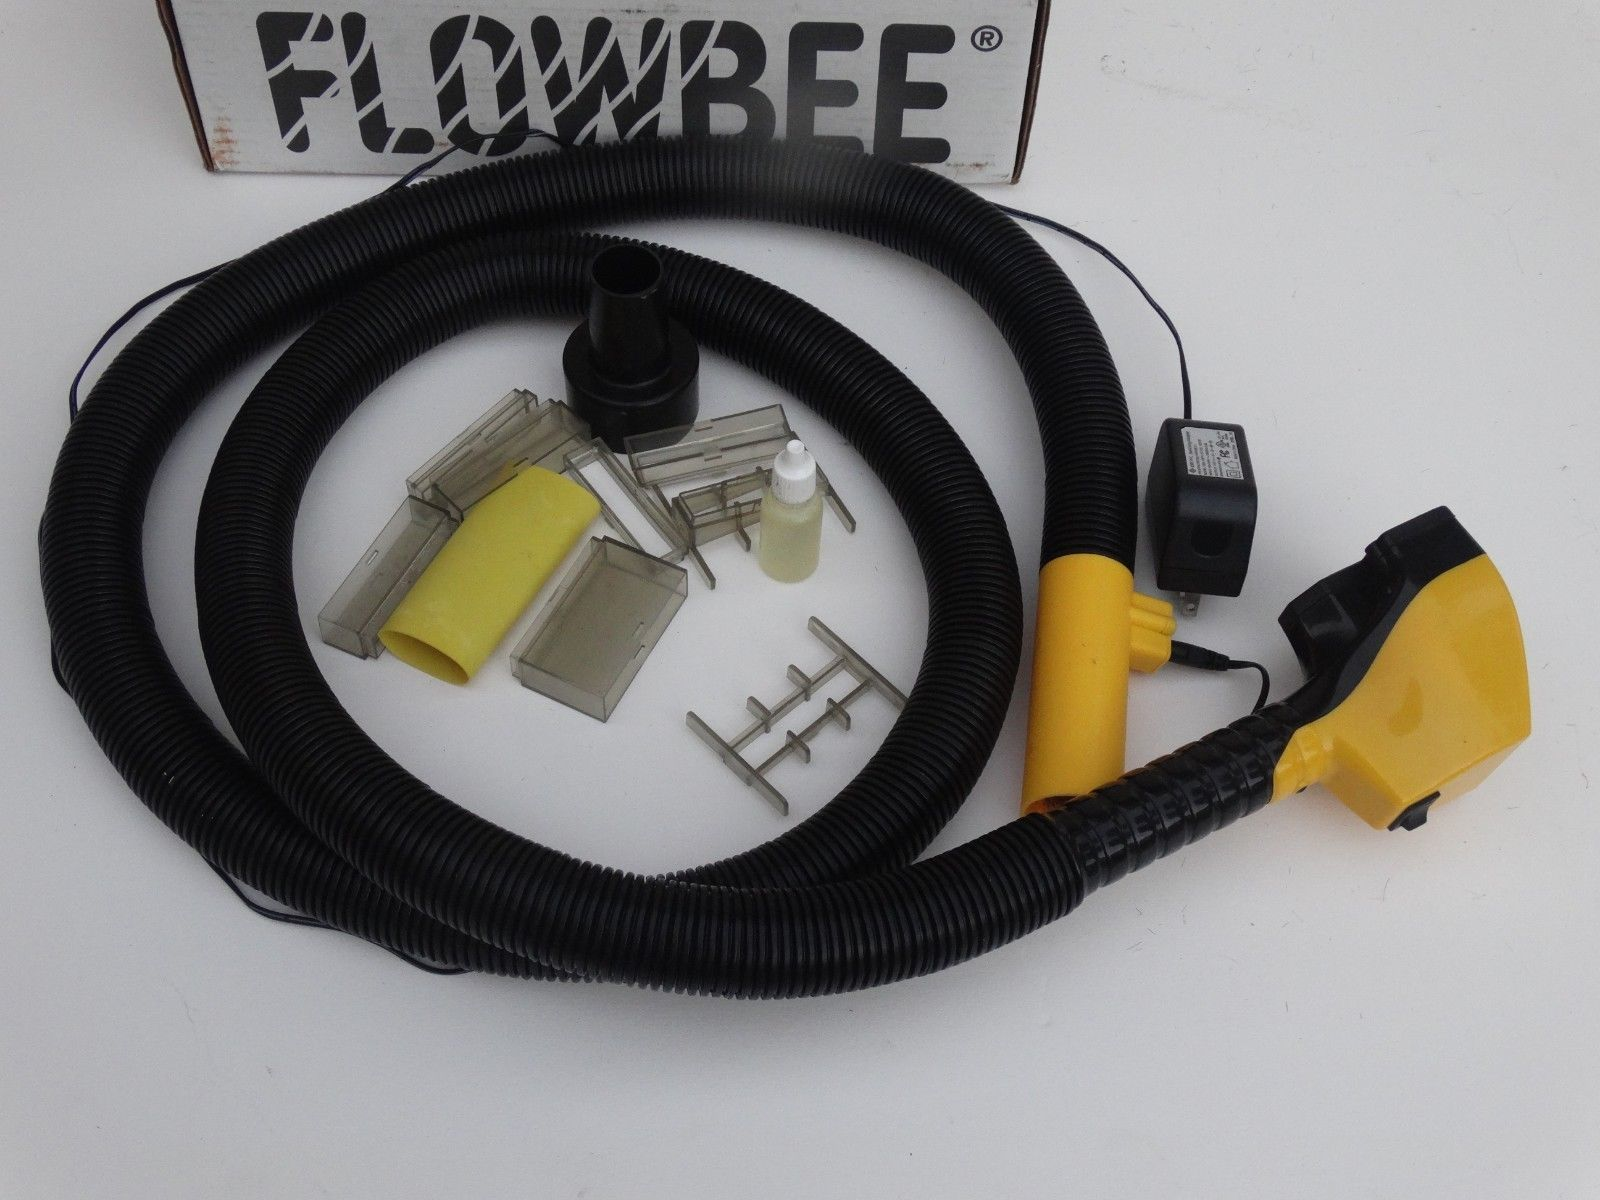 FLOWBEE Precision Home Hair Cutting System and 12 similar items